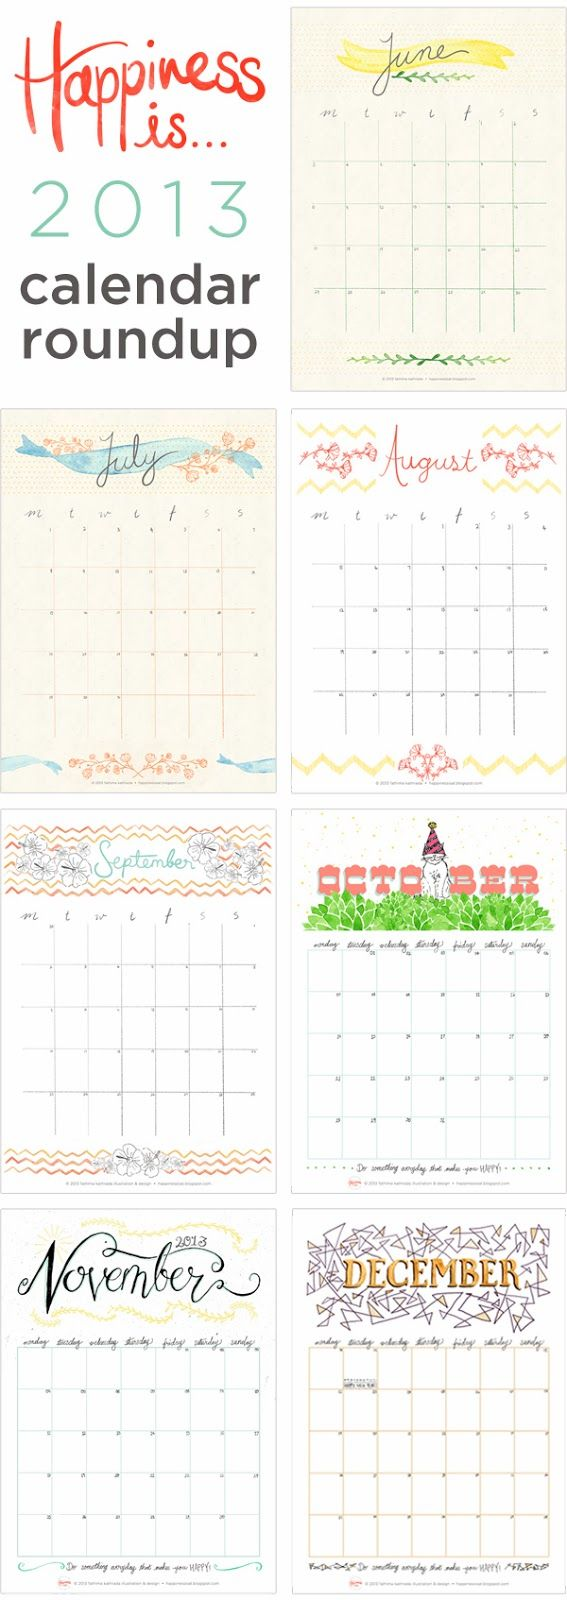 Happy New Year!   Free January Calendar Planner and roundup of 2013 calendars by Happiness is...